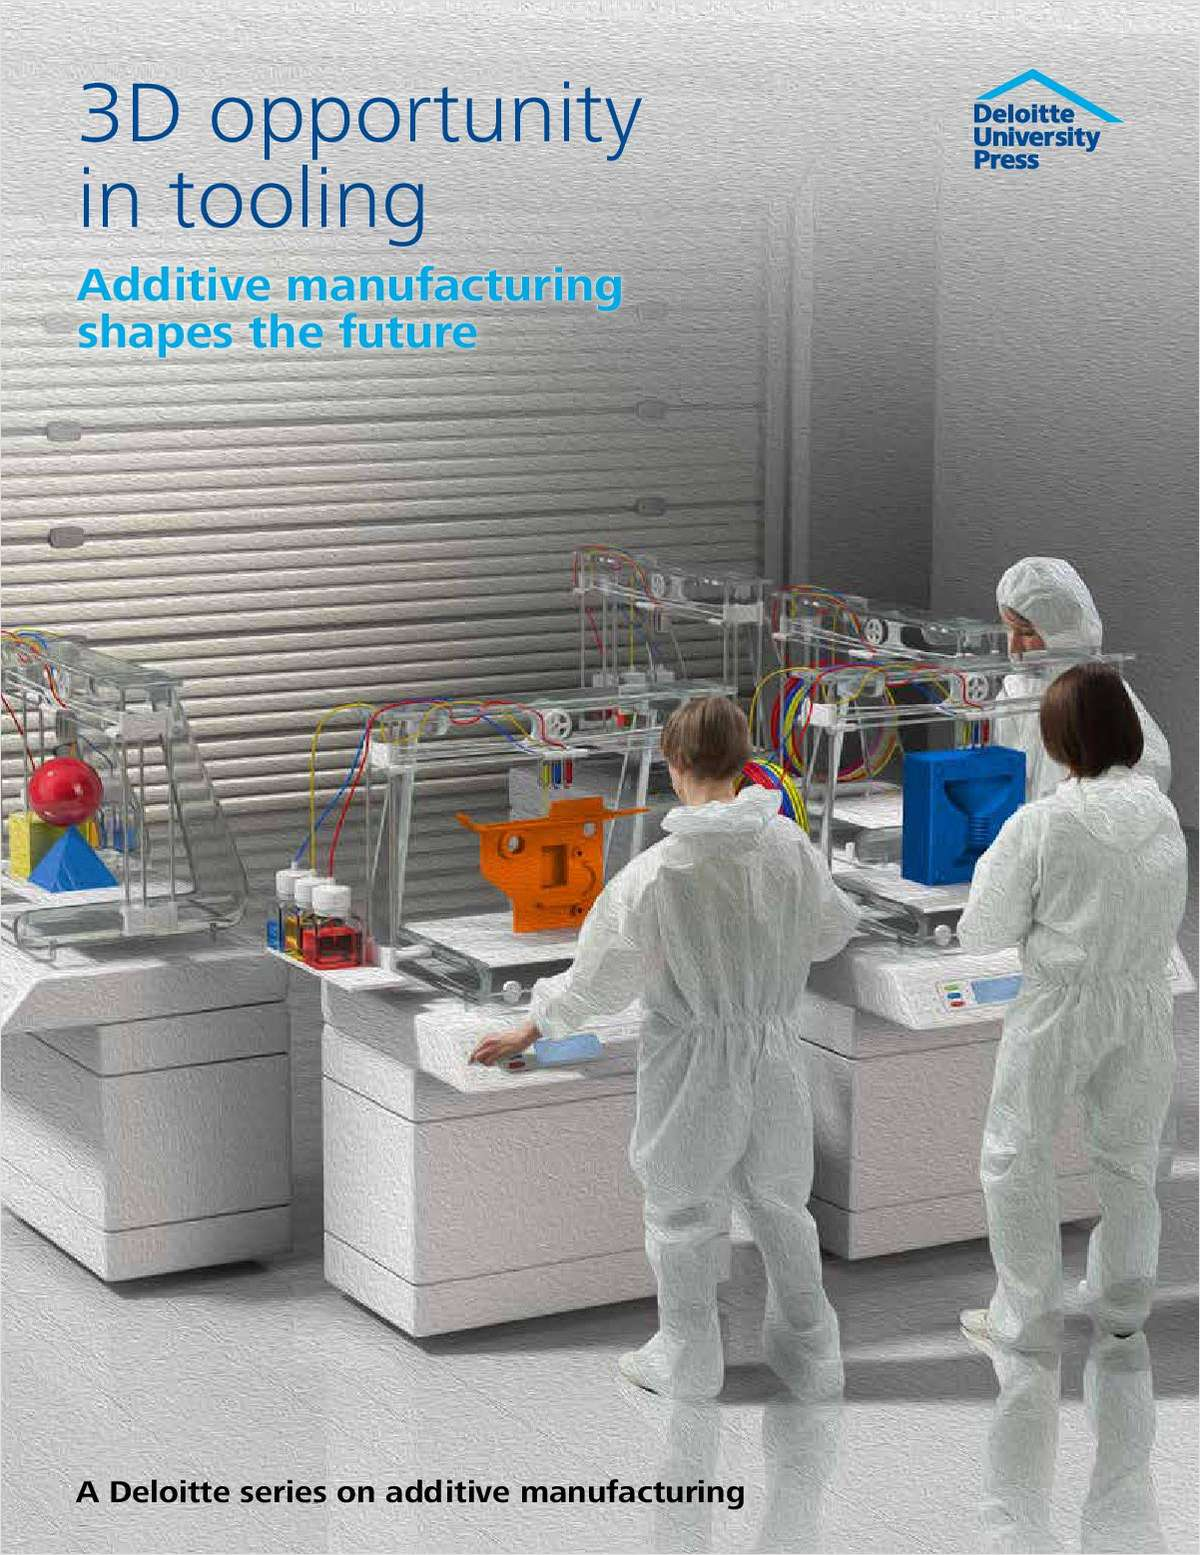 Deloitte Whitepaper: 3D Printing Opportunity in Tooling